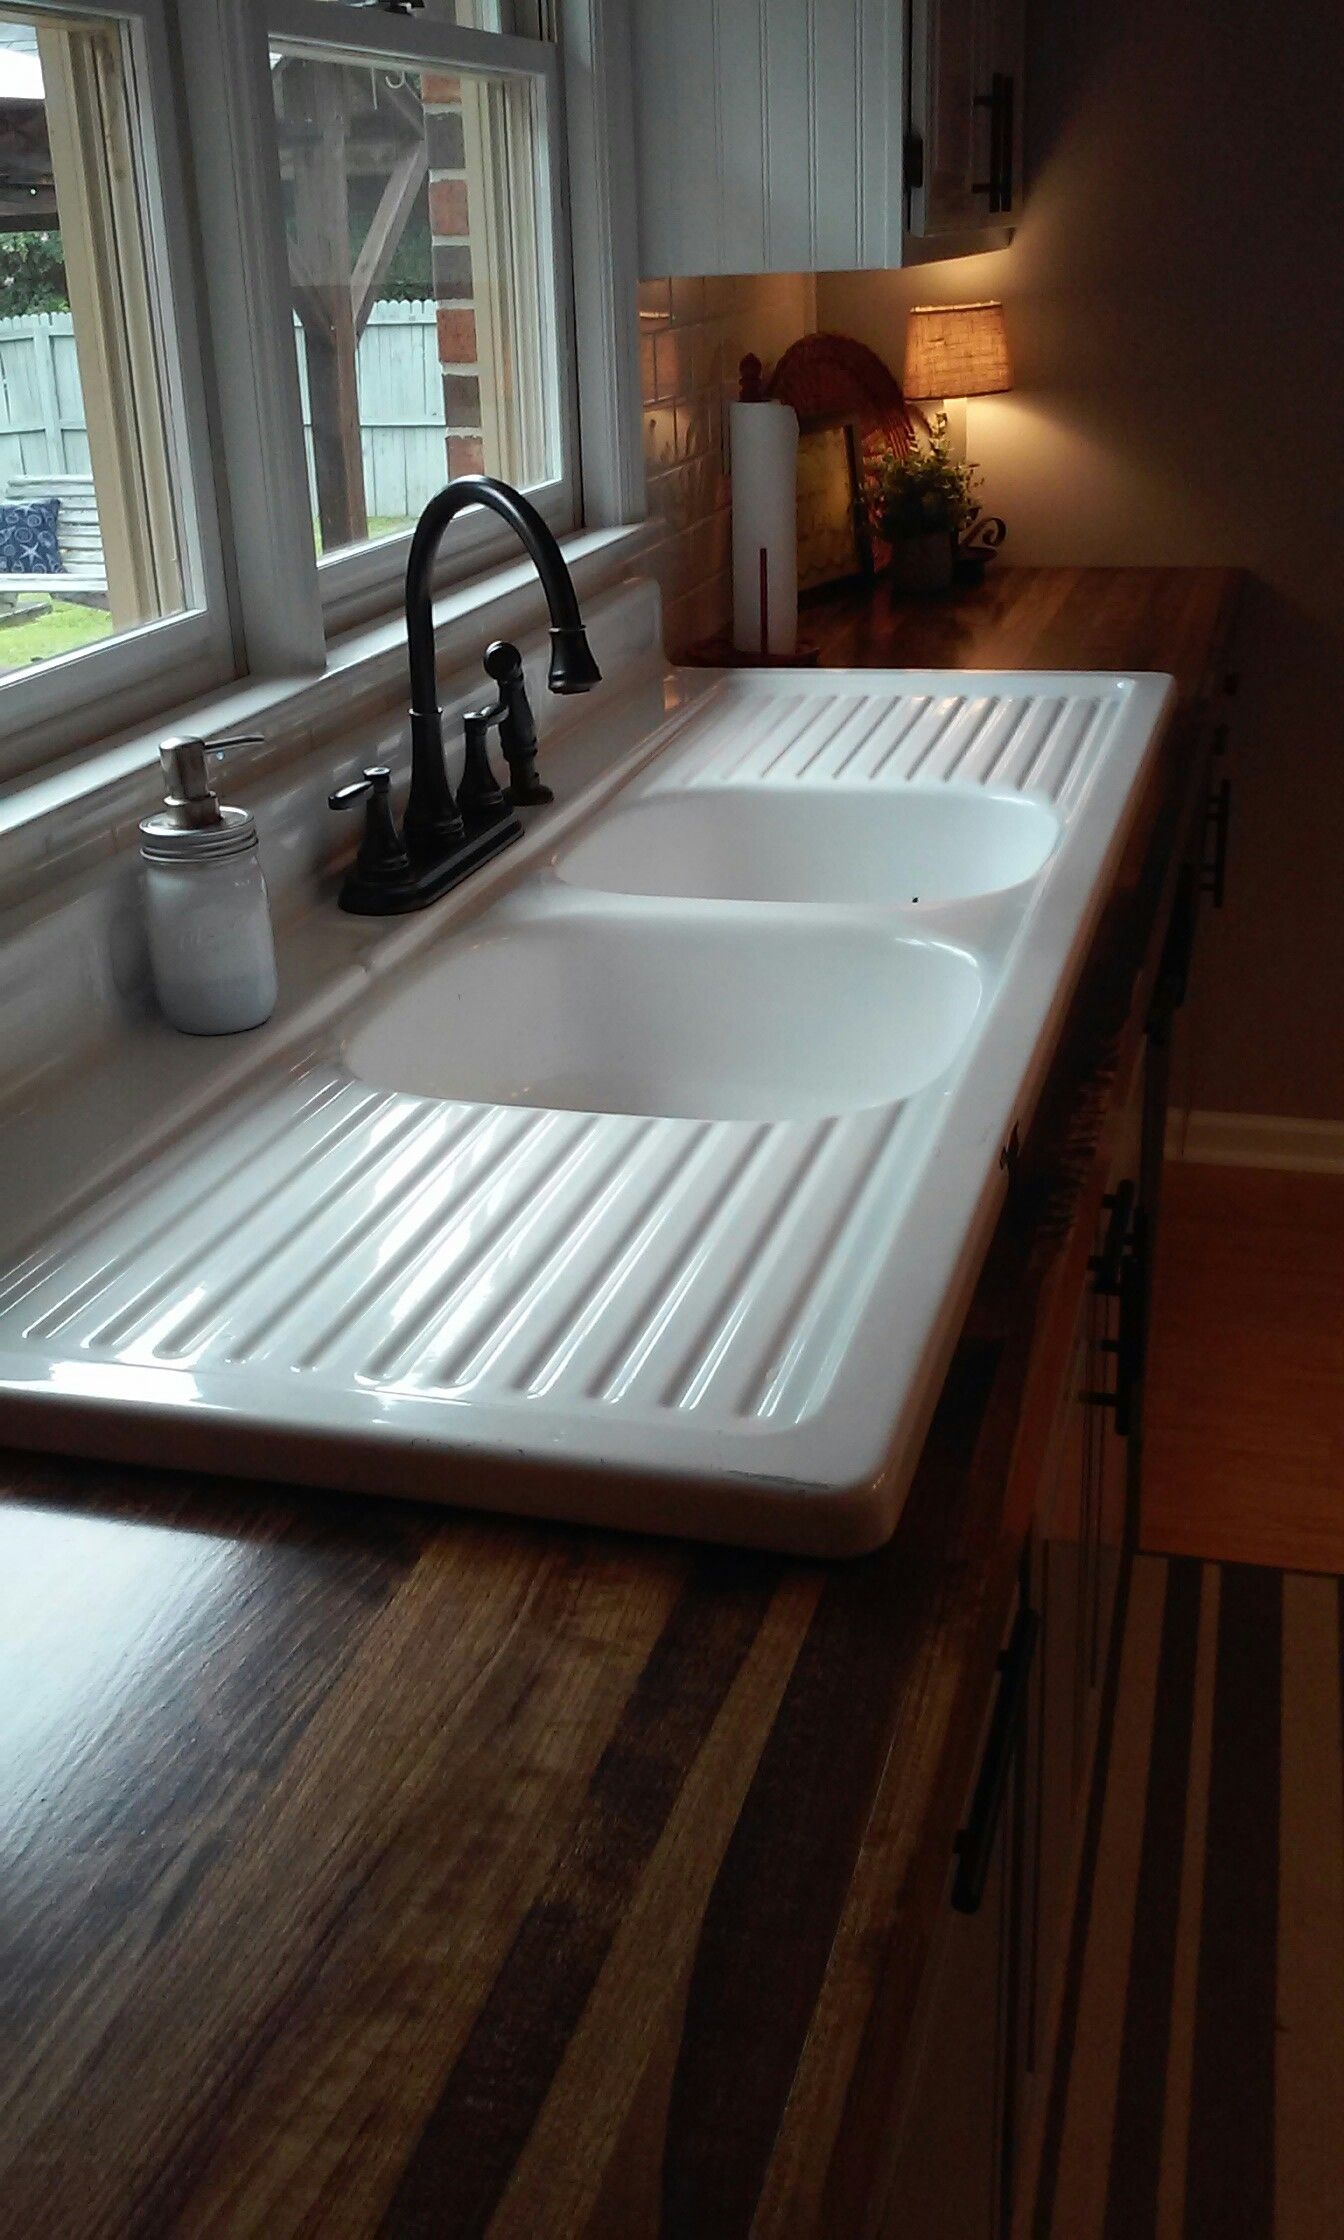 Finished our wooden countertops and installed our 65 yr